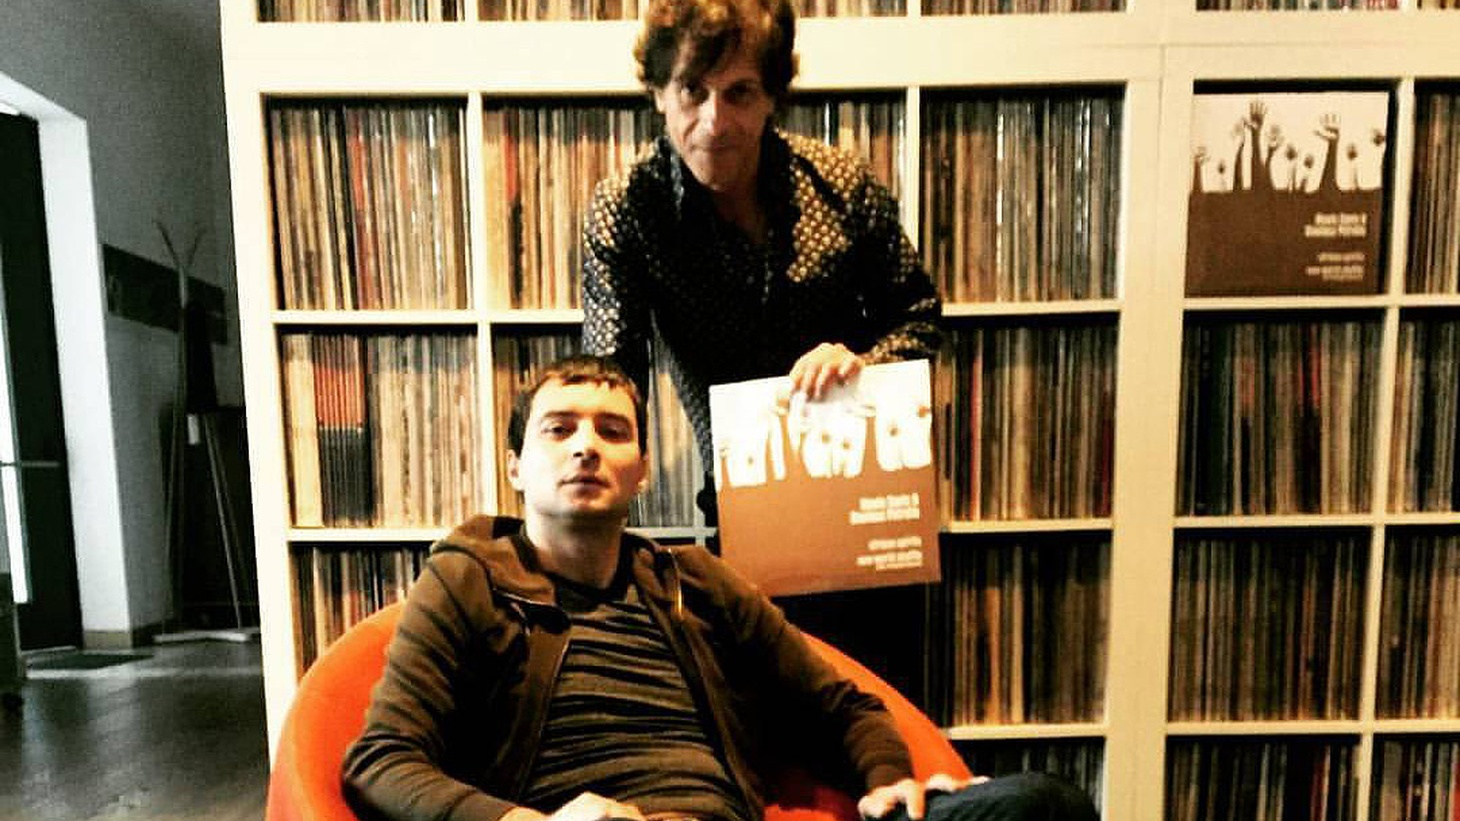 Both Nicola Conte and Gianluca Petrella are producers and talented musicians who have been friends for a long time.